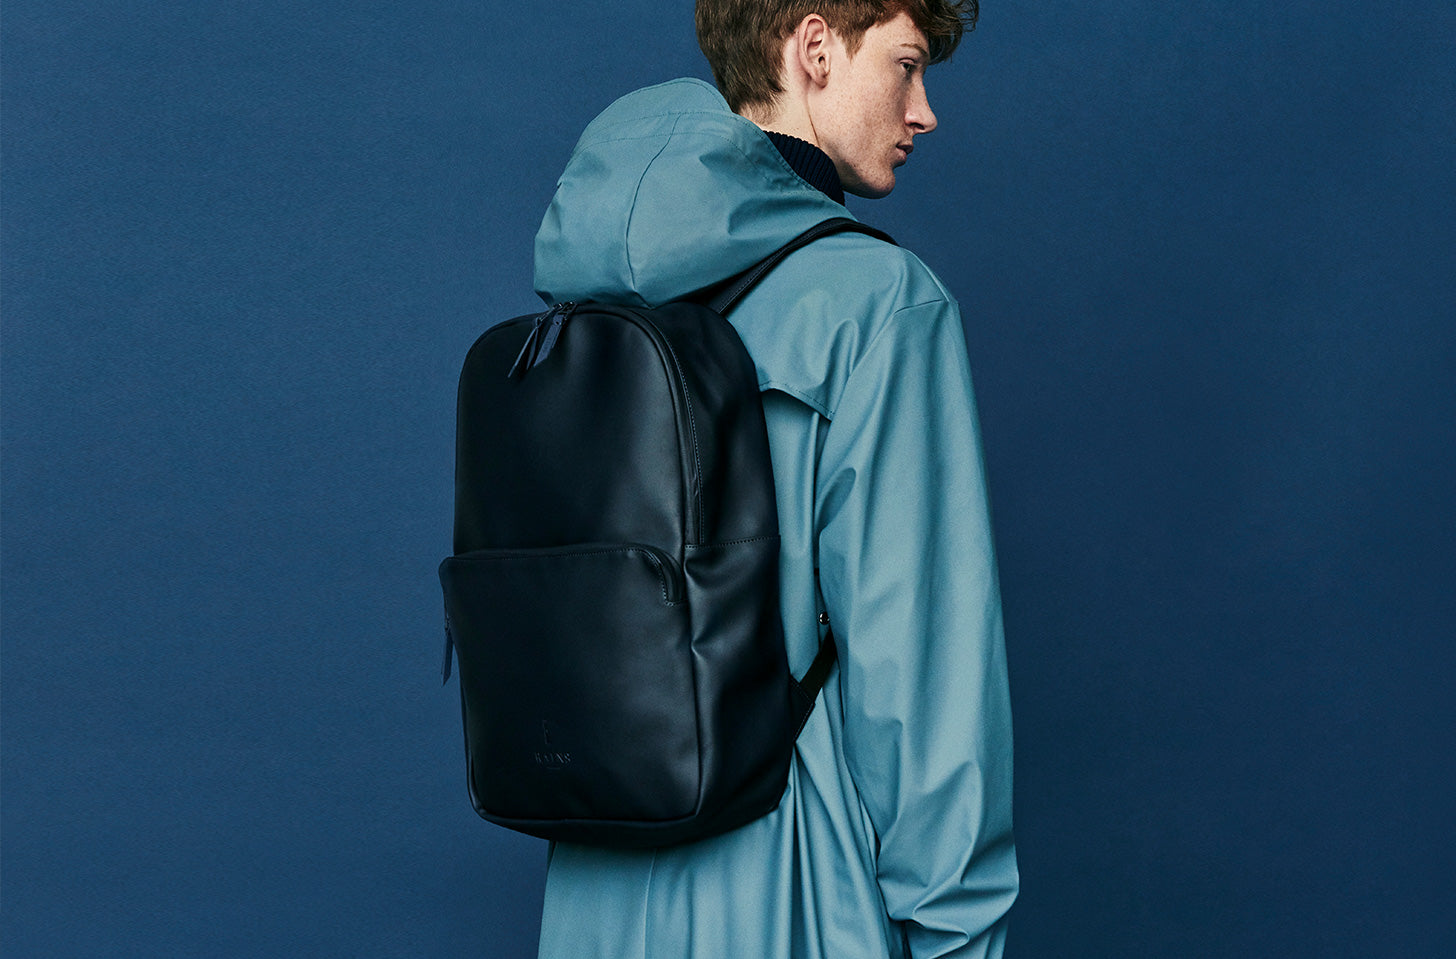 Our Guide To The Rains Backpack Range